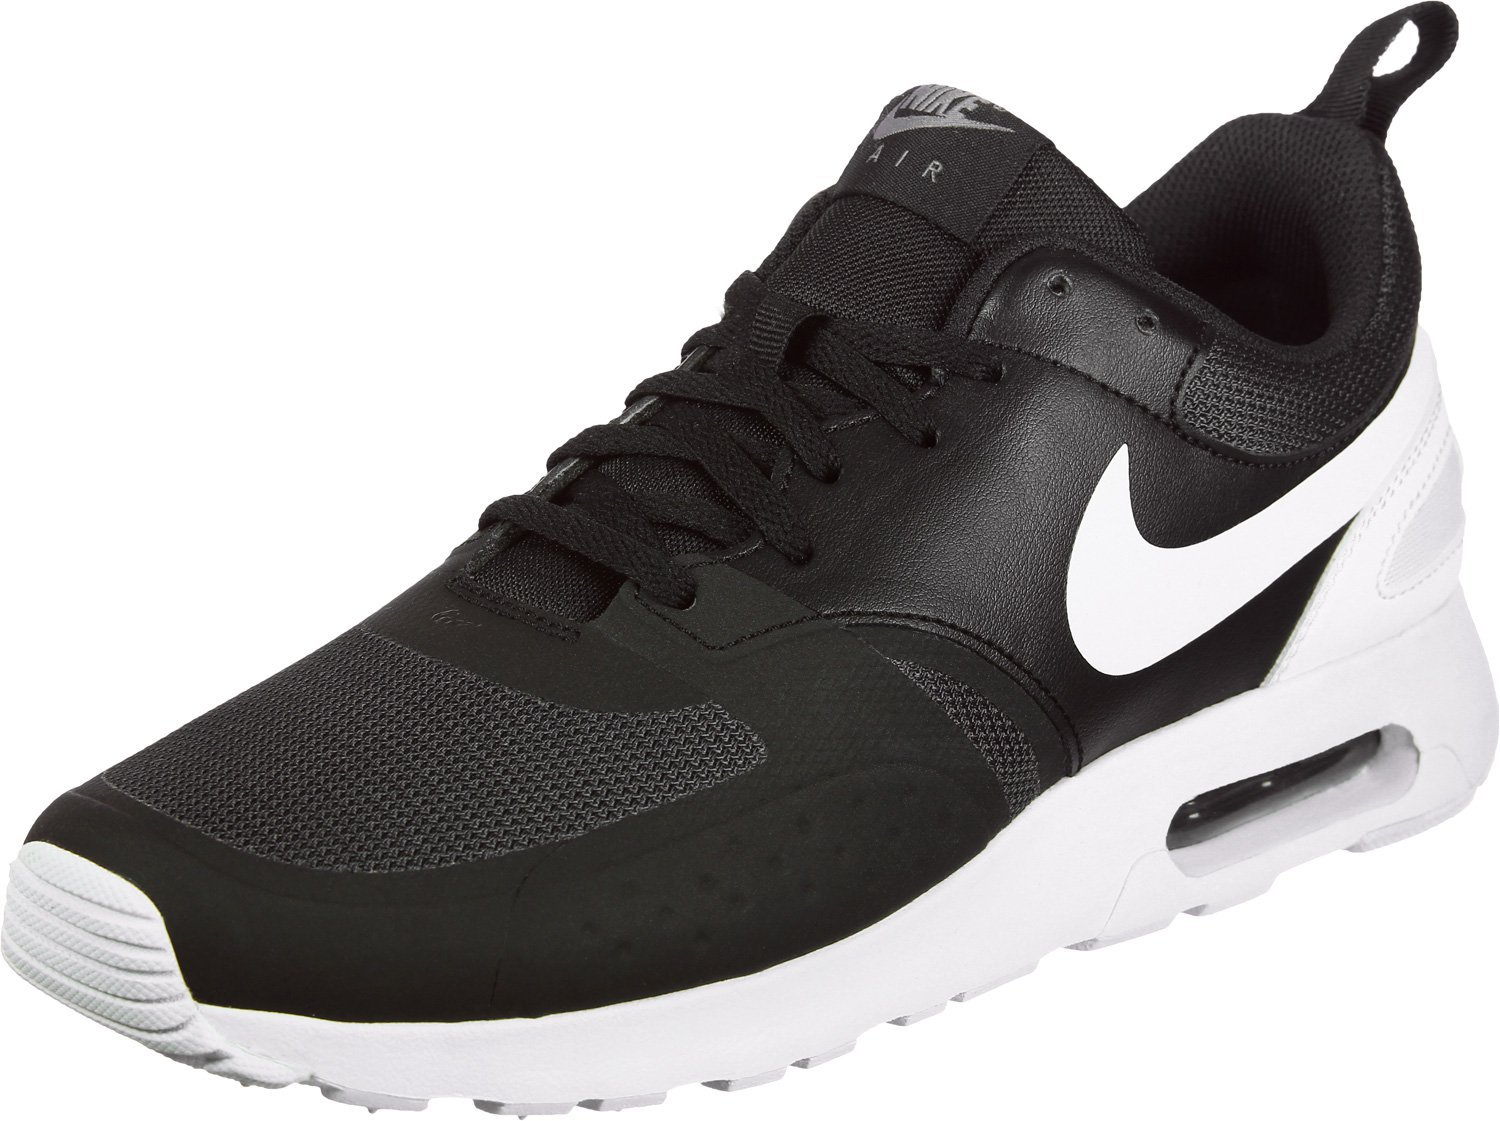 big sale 6c3b5 6f0c5 Nike Air Max Vision black white-anthracite günstig kaufen